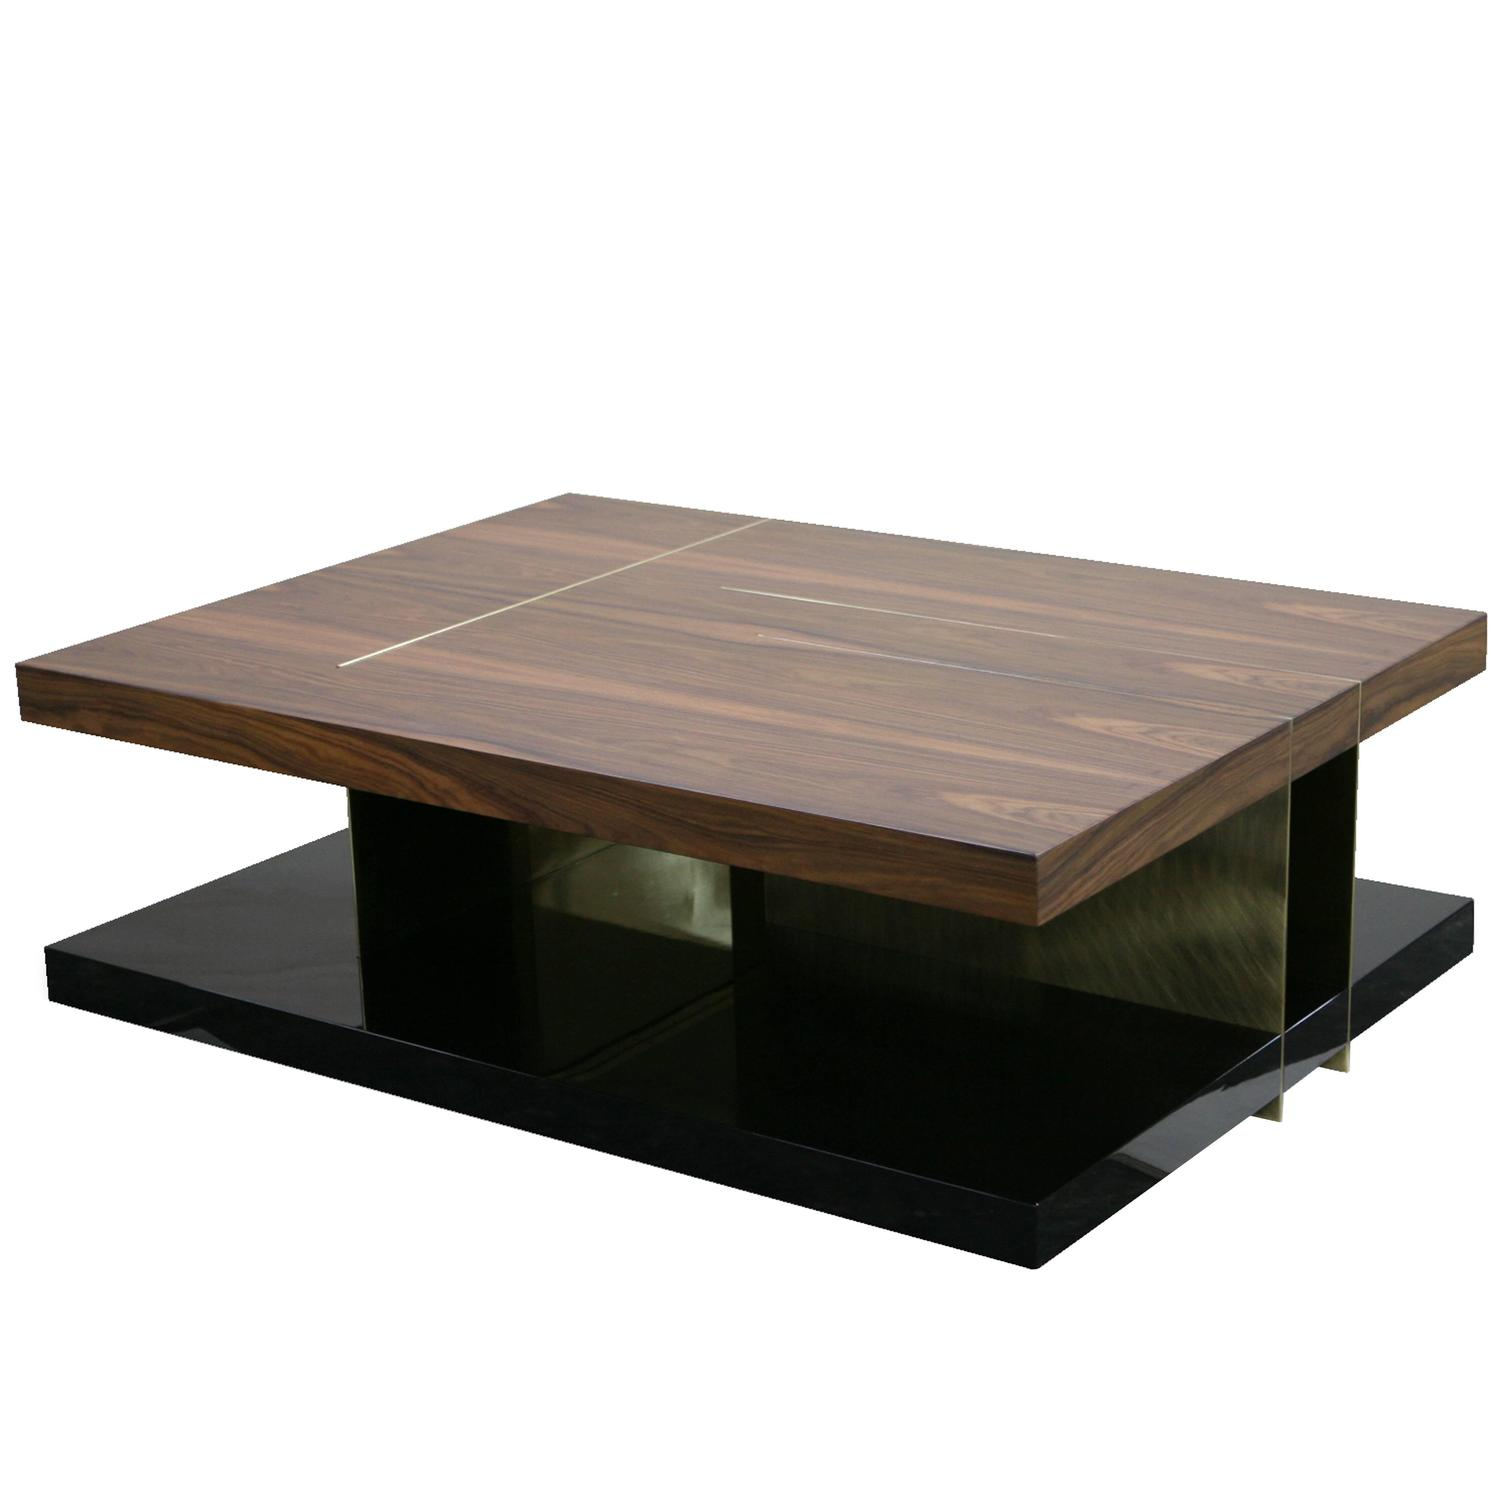 European modern timber lacquer brass rectangular lallan for Best centre table designs